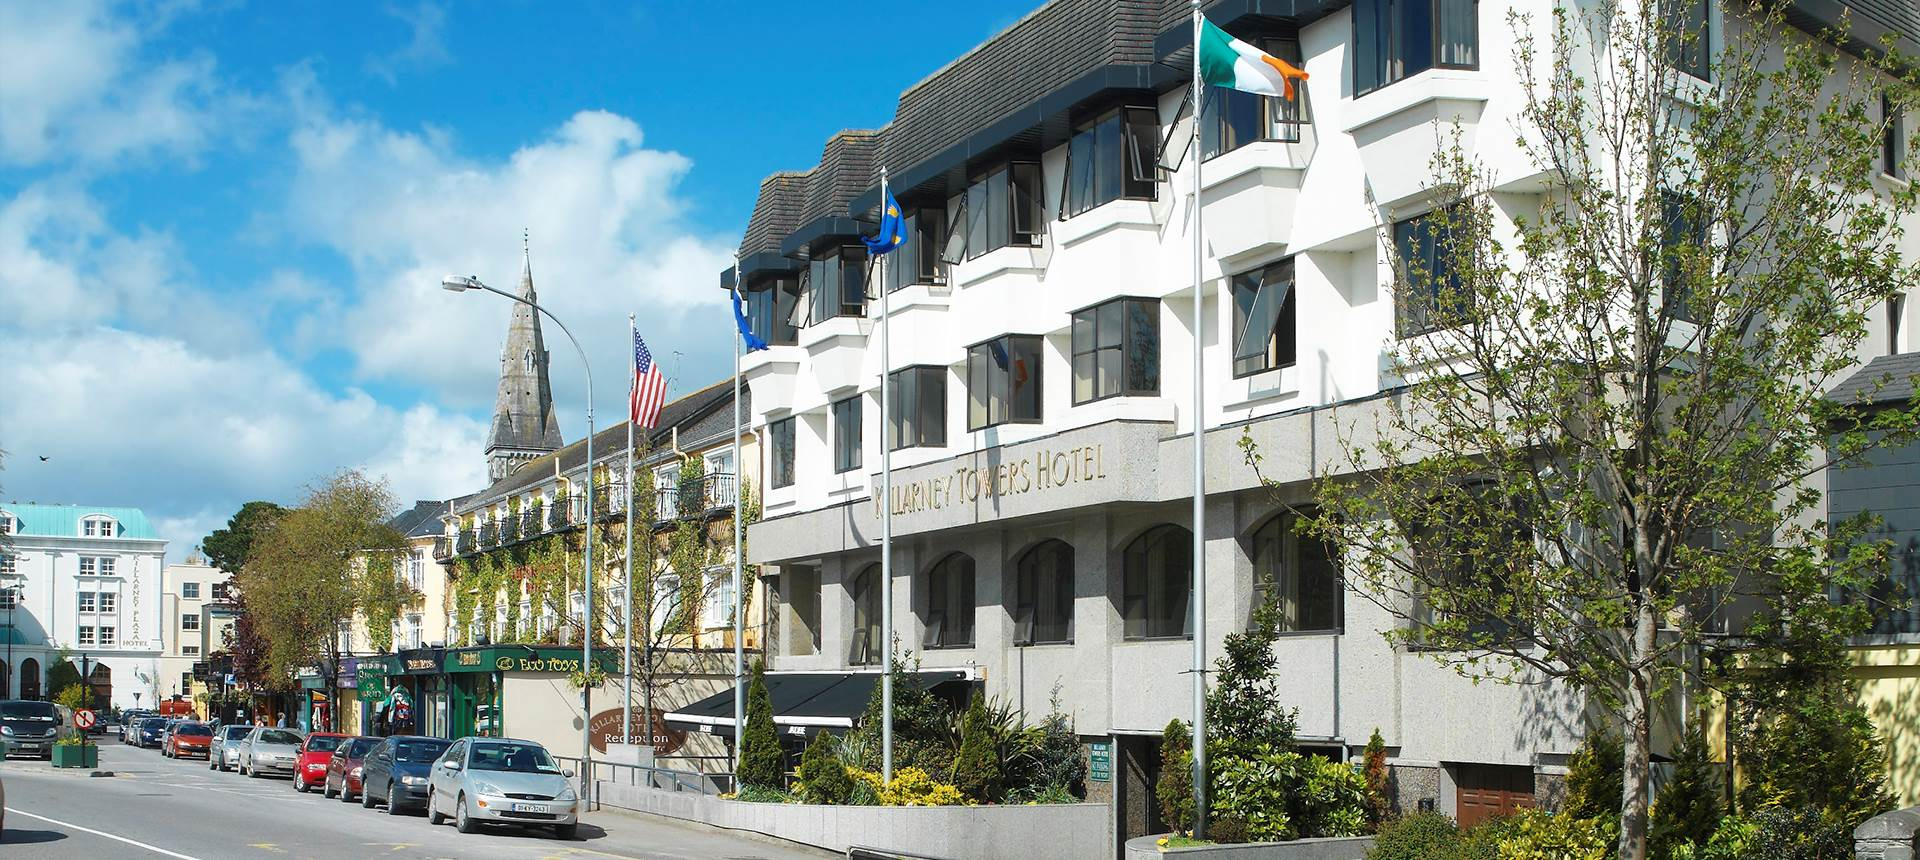 Killarney Towers Hotel Ireland